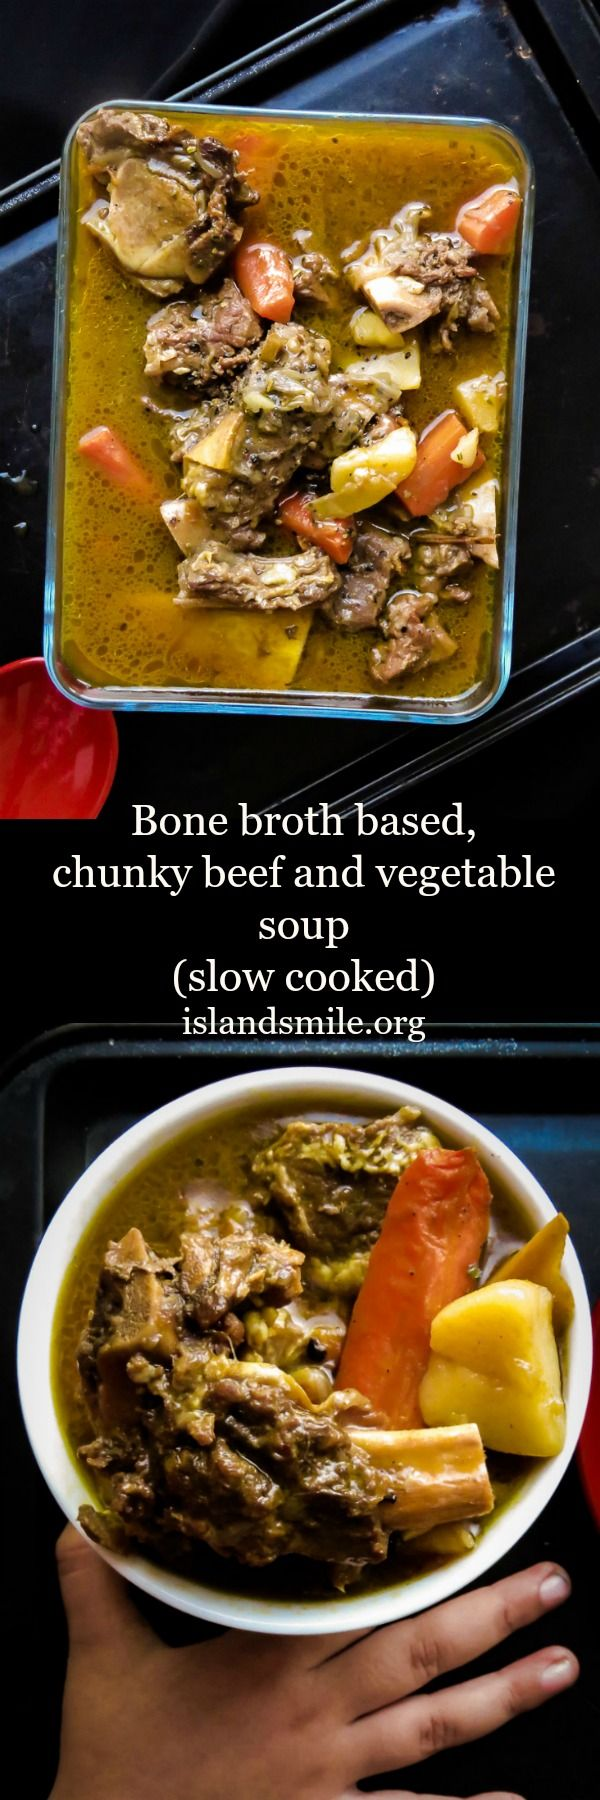 bone-broth-based-chunky-beef-and-vegetable-soupslow-cooked-islandsmile.org Bone broth based, chunky beef and vegetable soup. Big, bold flavors to feed your family.The longer you cook the tastier it is.